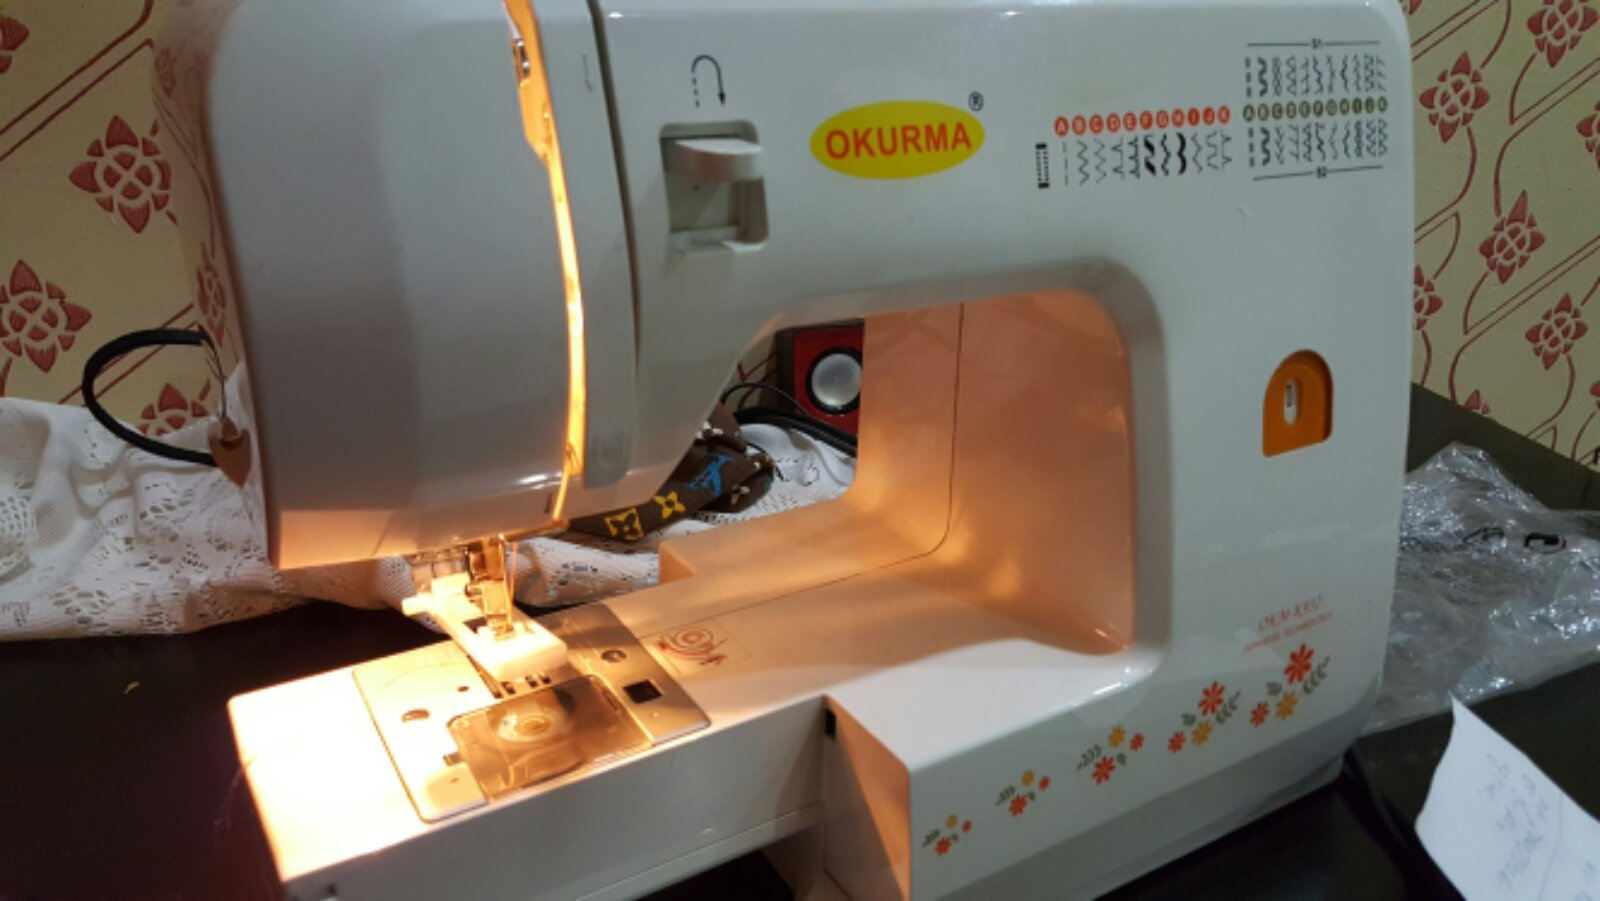 Brand Okuma Portable Buton hole Sewing Machine@@